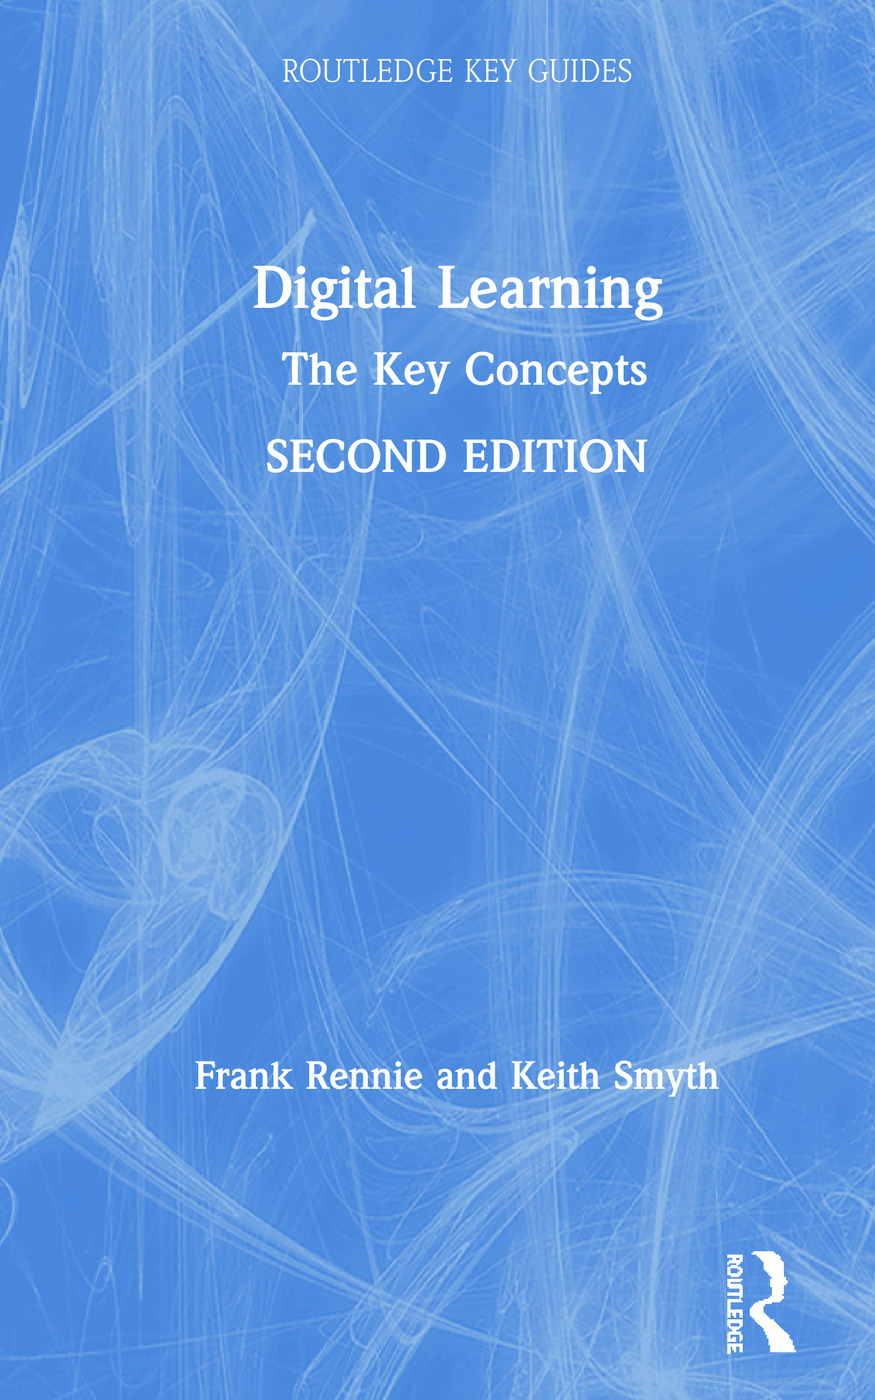 Digital Learning: The Key Concepts book cover